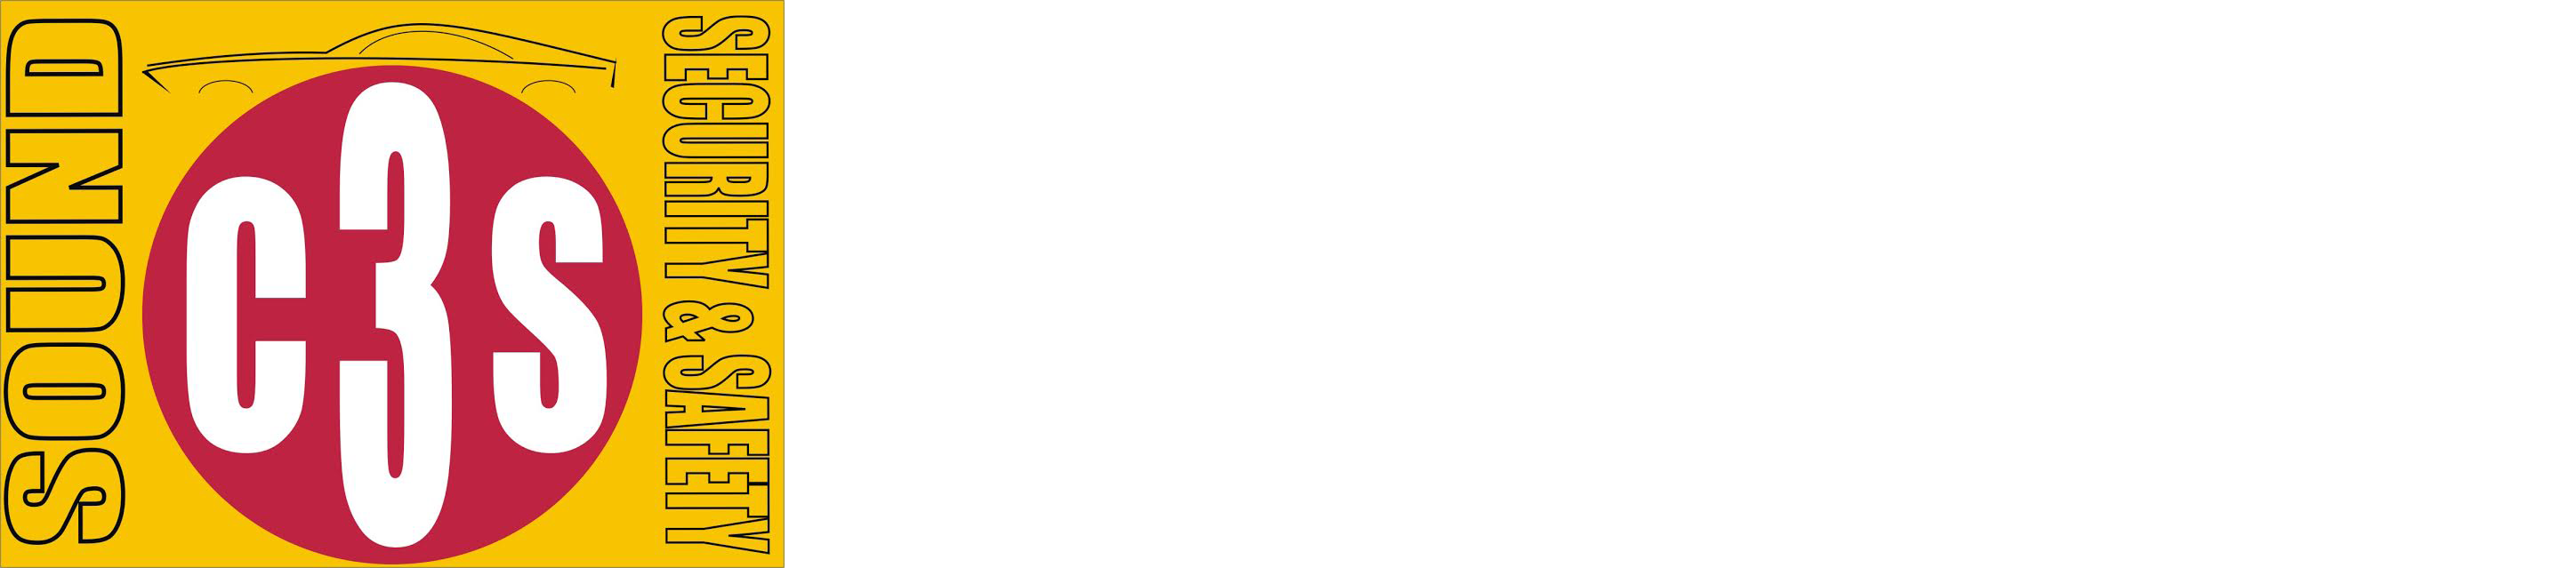 Car Sound Security & Safety